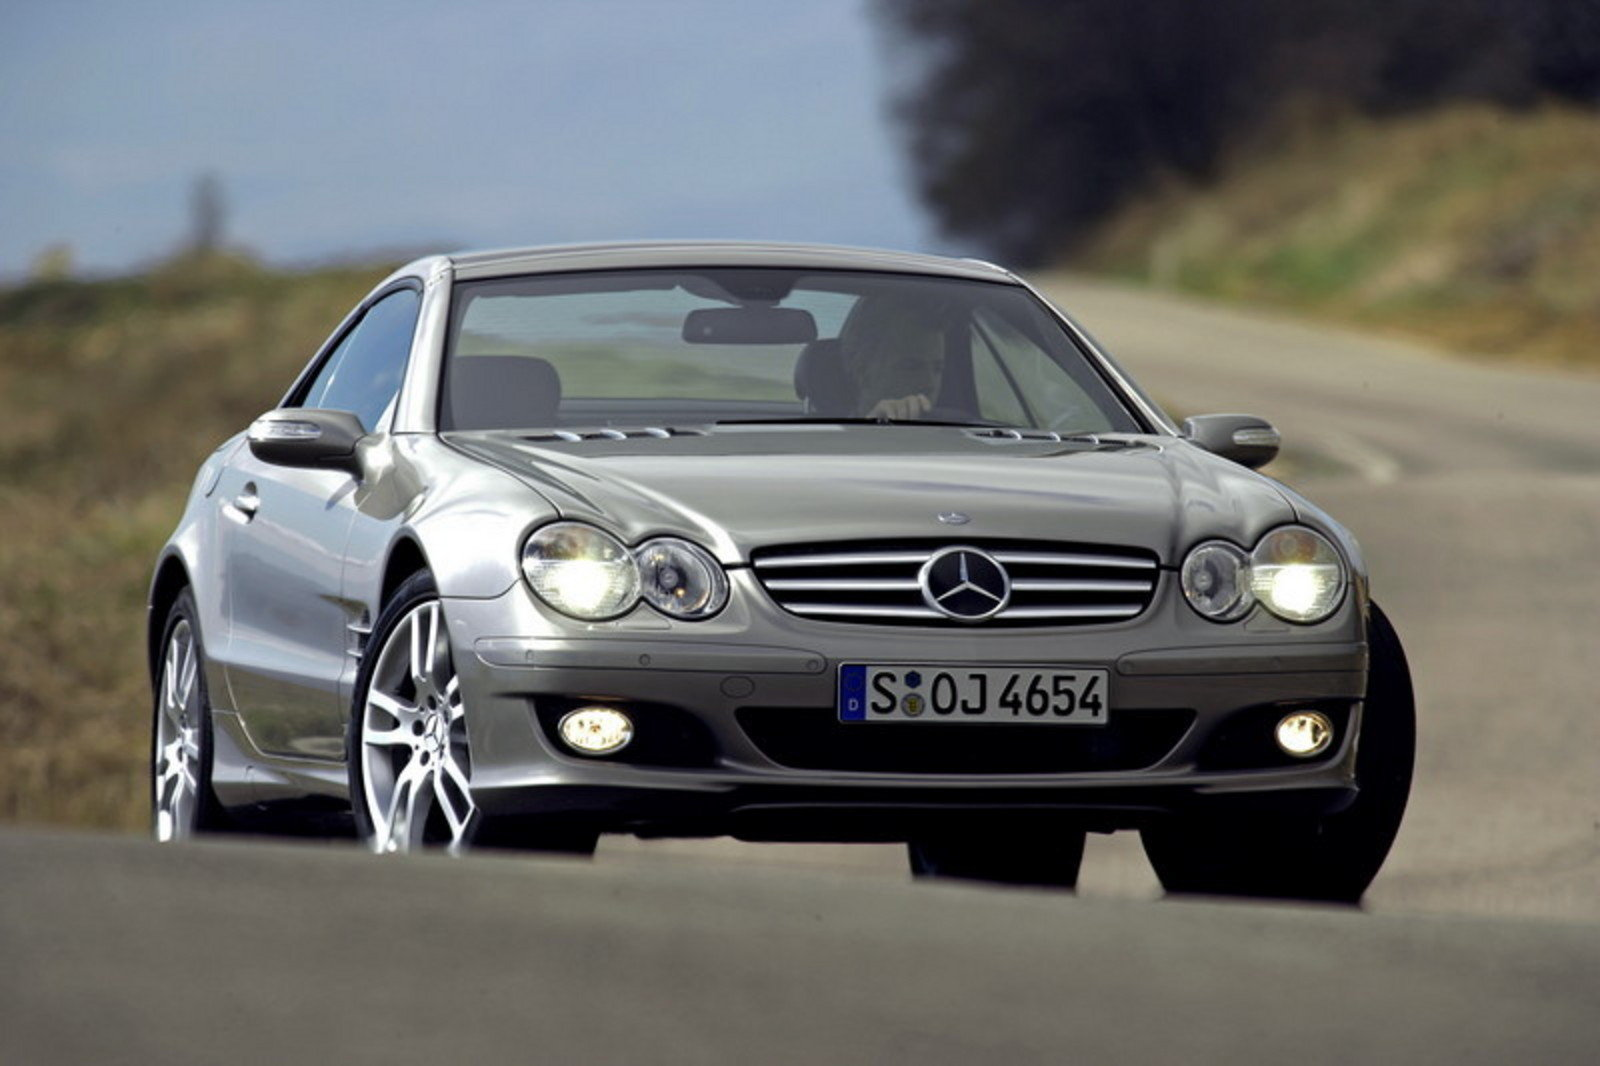 2007 mercedes sl class picture 42669 car review top for 2007 mercedes benz sl500